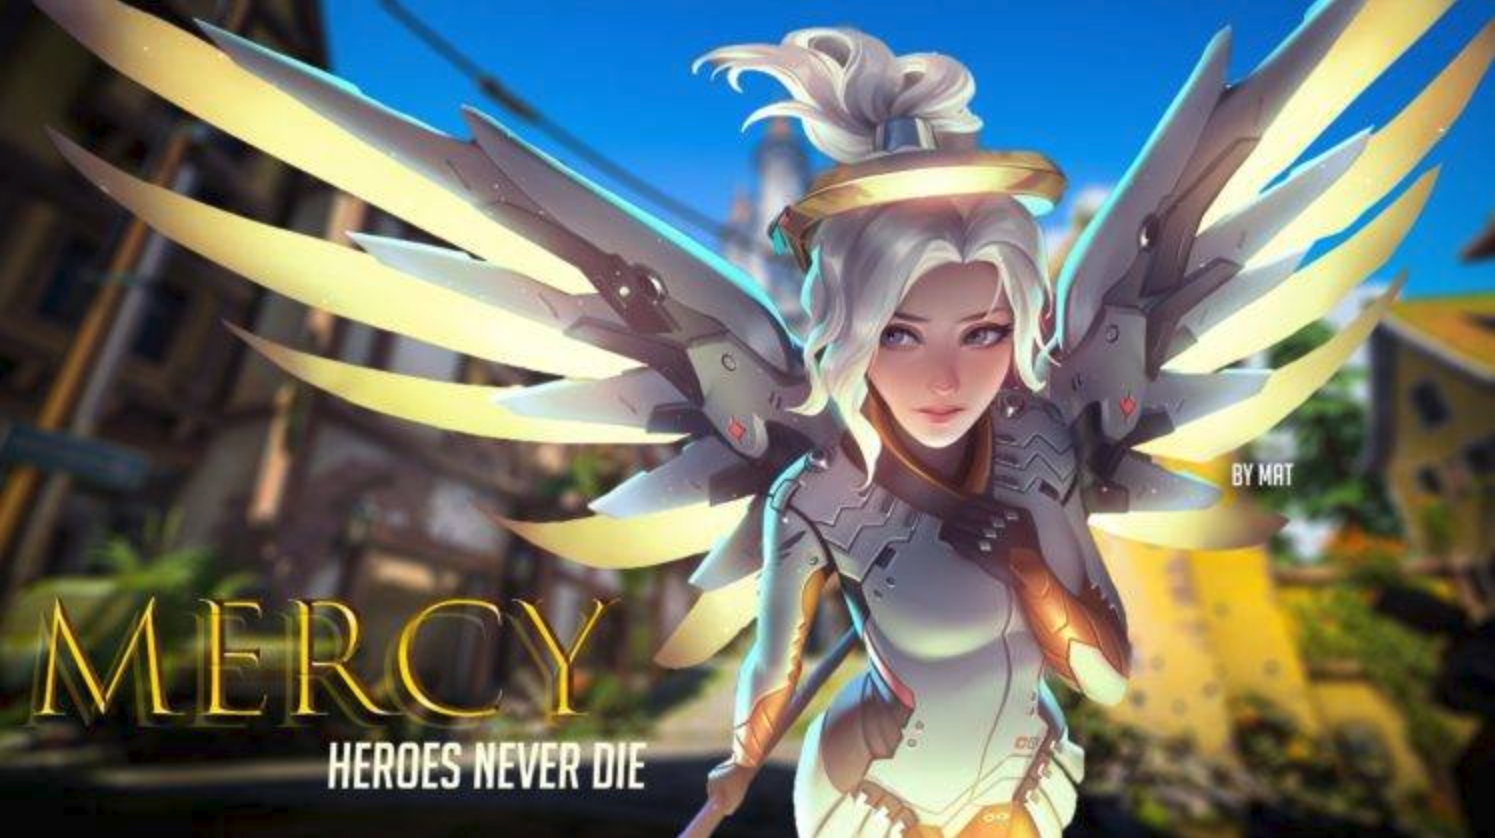 What is the best way to play Mercy in Overwatch? - Quora